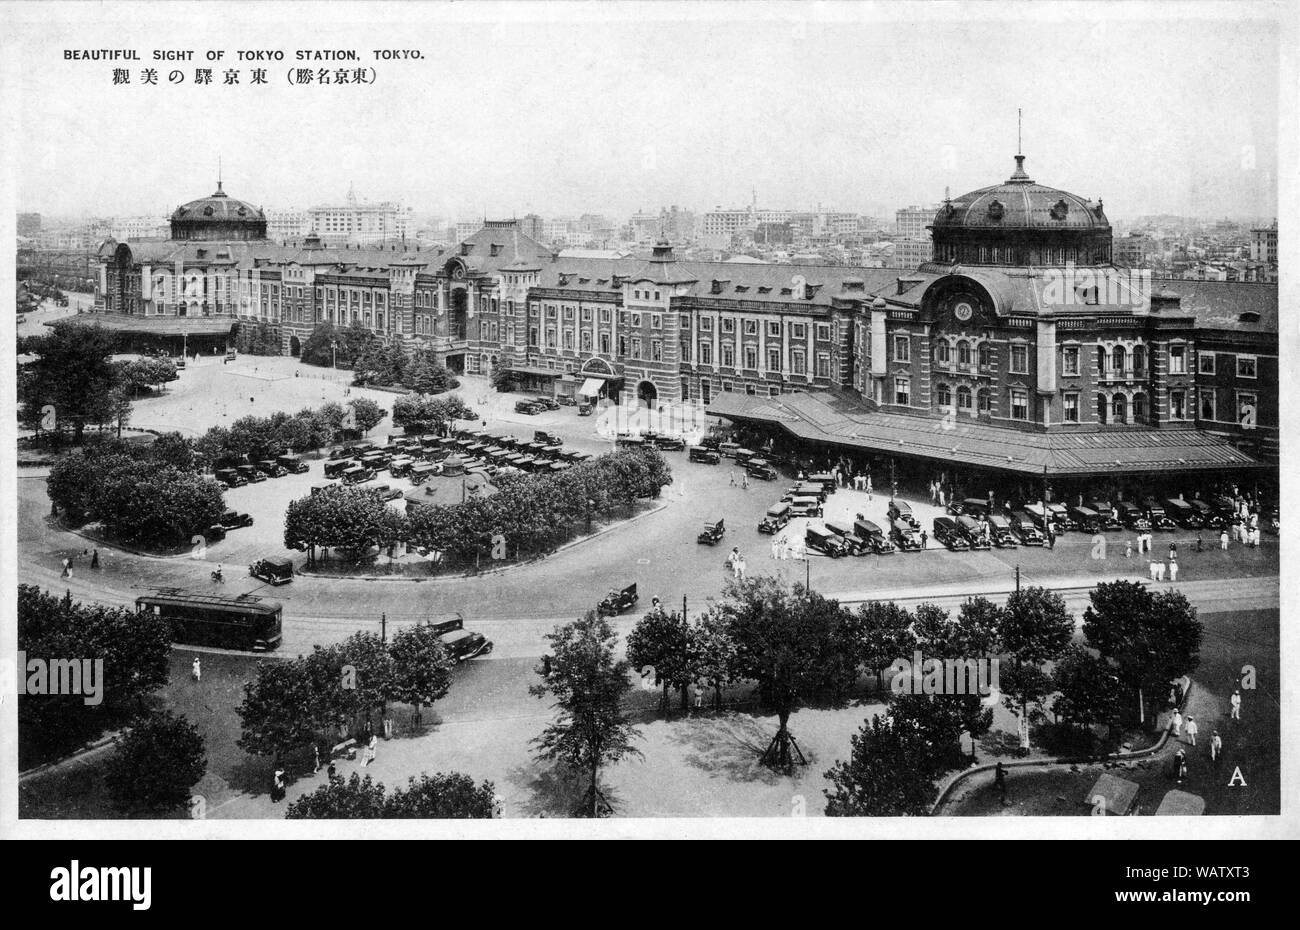 [ 1930s Japan - Tokyo Station ] —   Tokyo Station, Tokyo. Located in the Marunouchi business district of Tokyo, near the Imperial Palace grounds and the Ginza commercial district, the building was designed by architect Tatsuno Kingo to celebrate Japan's victory in the Russo-Japanese War.   The station opened on December 20,  1914. In 1921, Prime Minister Takashi Hara was assassinated here.  20th century vintage postcard. Stock Photo